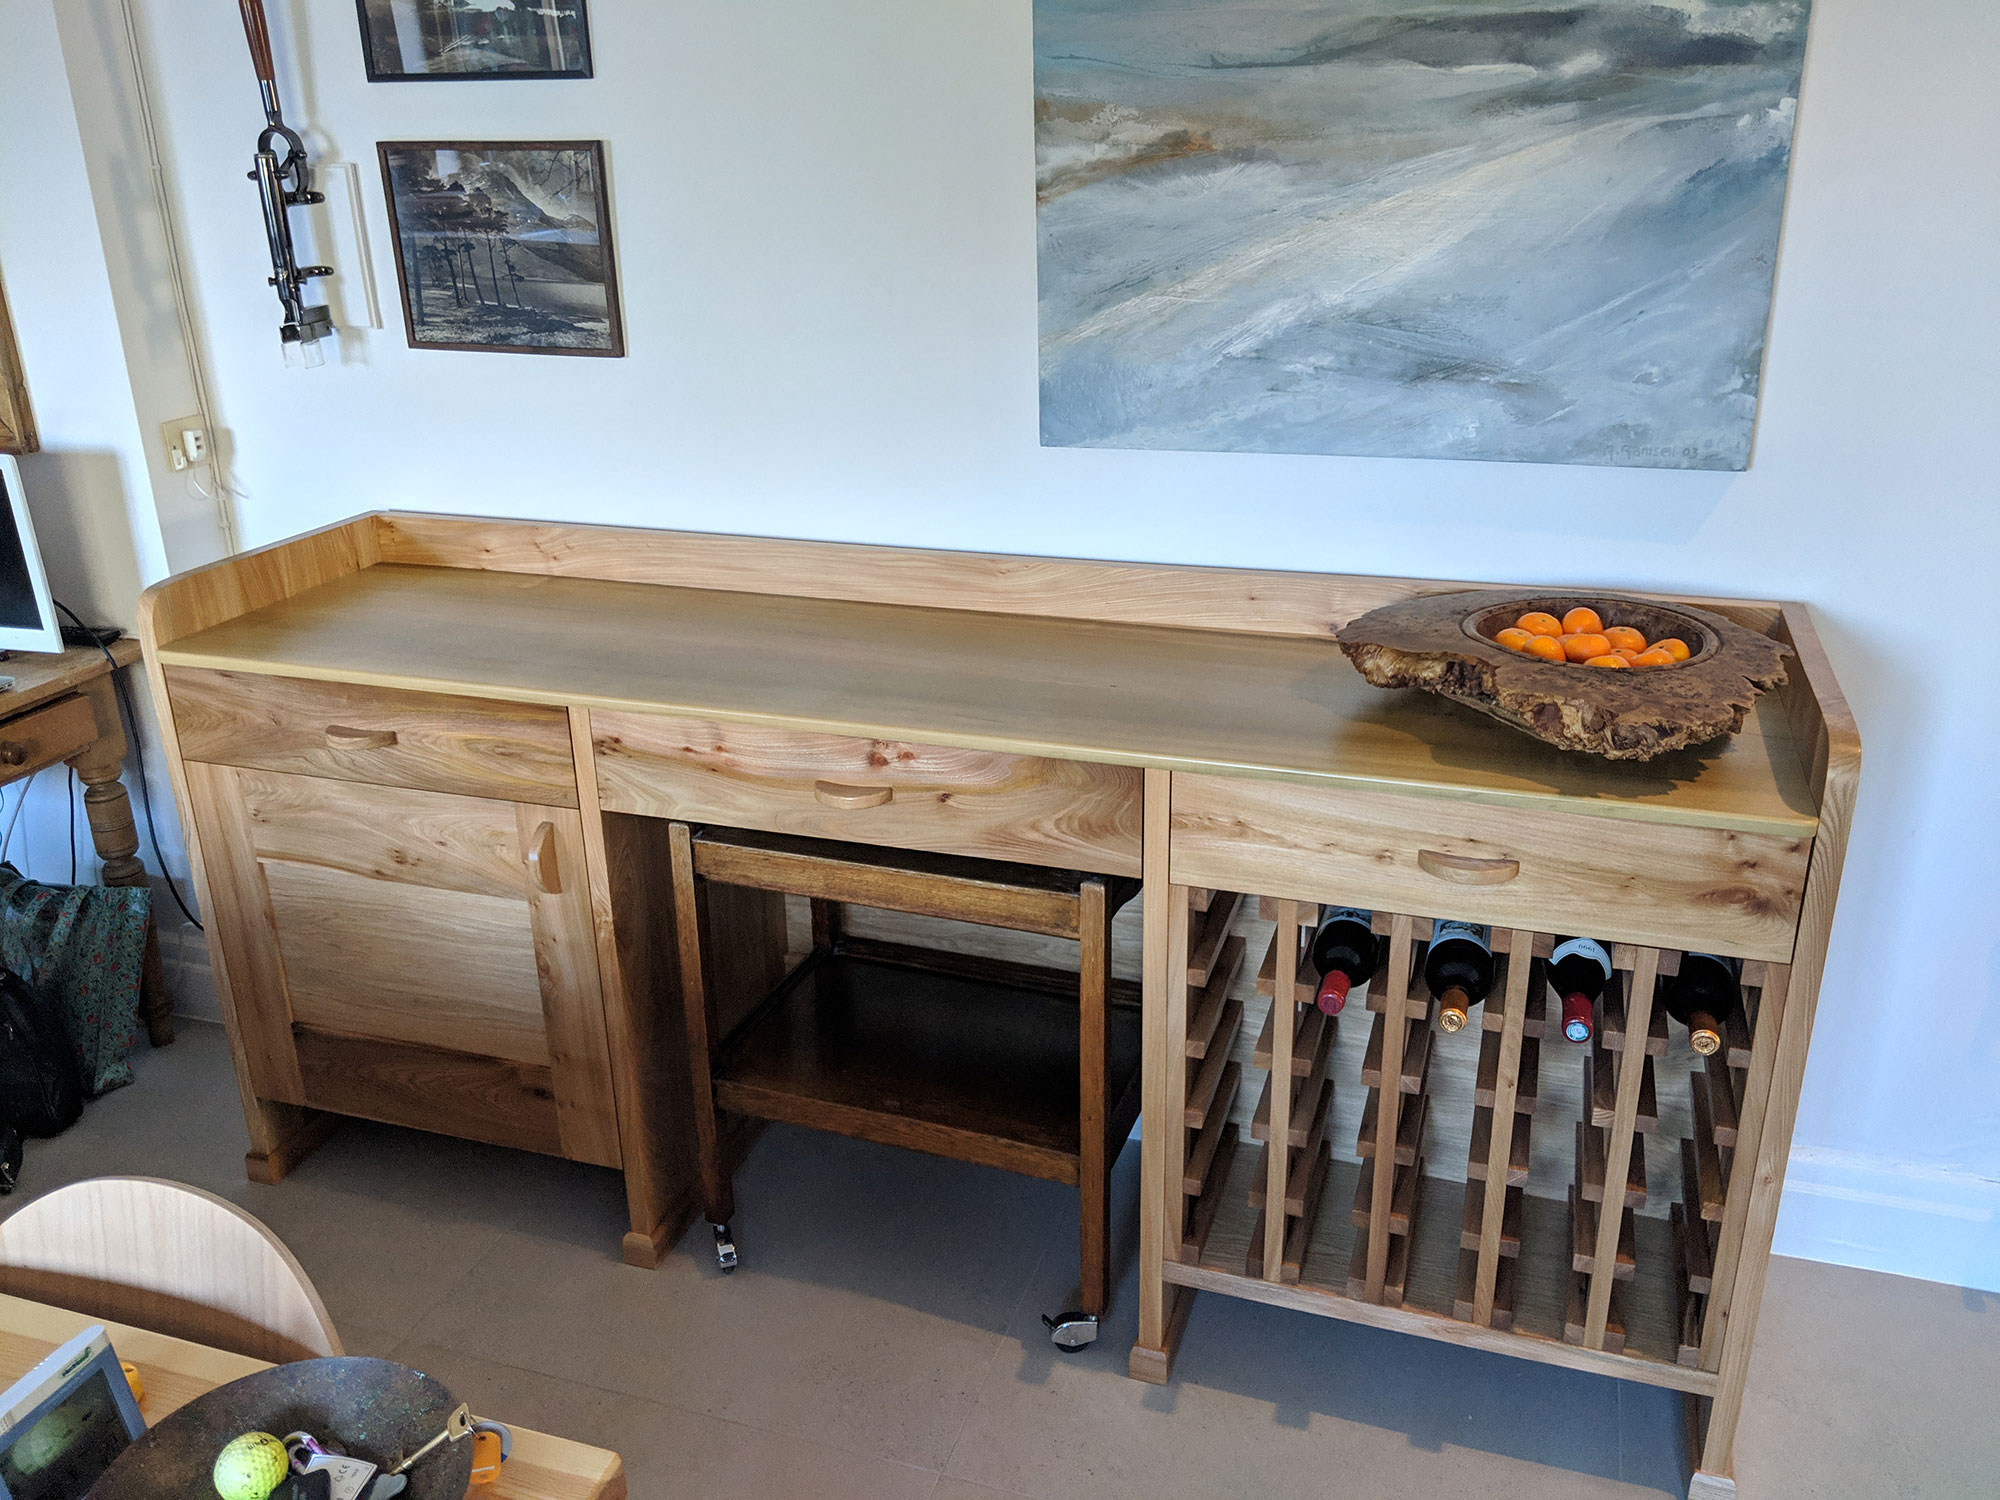 Kitchen dresser made from English Elm